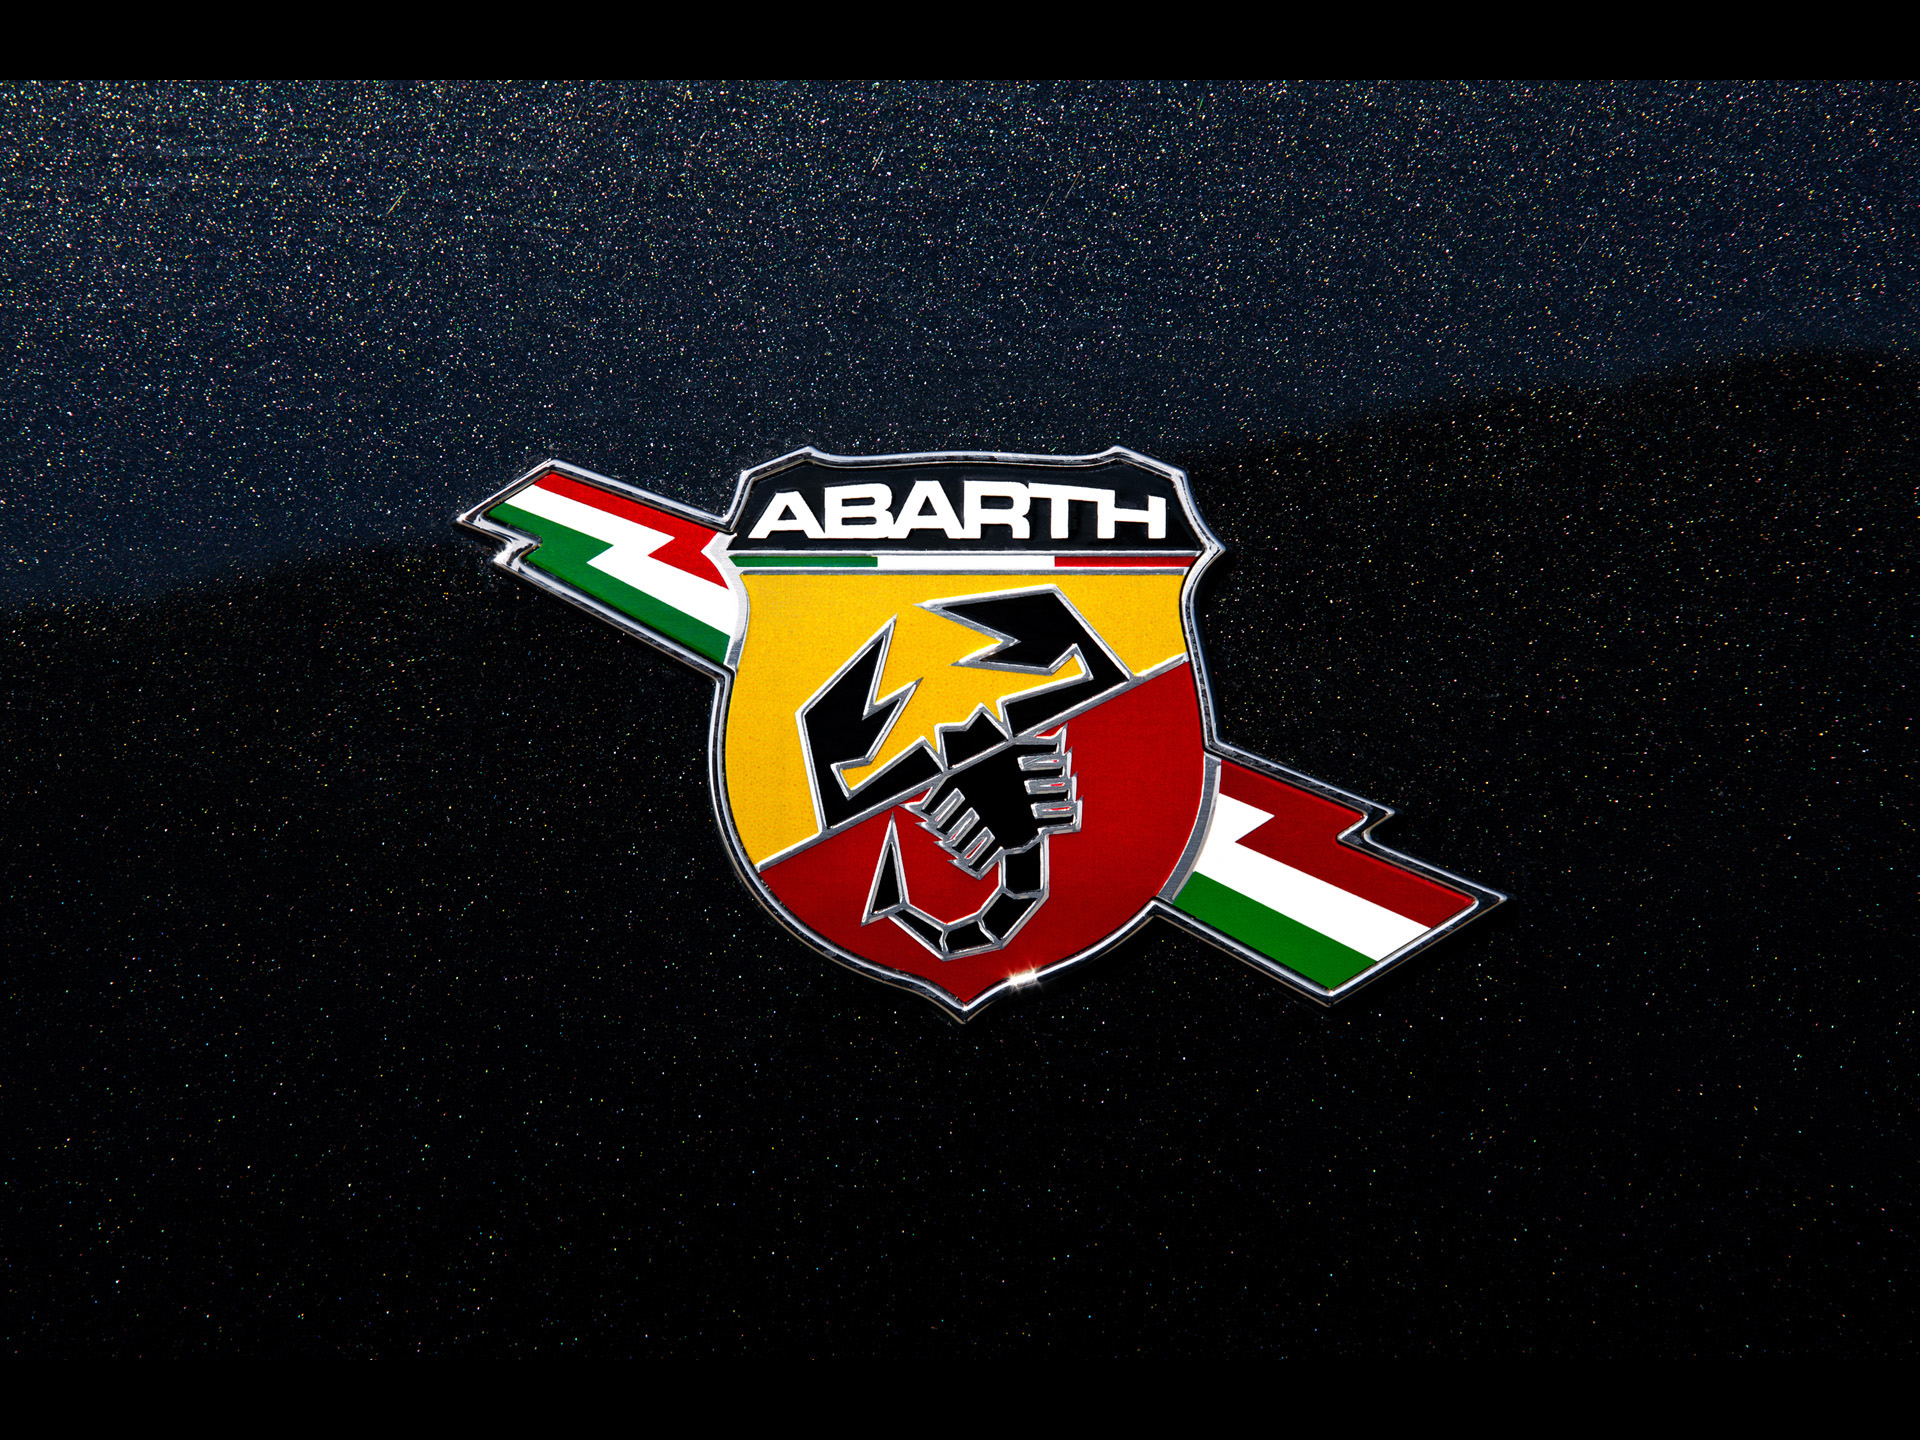 1920x1440 Fiat 500 Abarth Emblem Desktop Pc And Mac Wallpaper